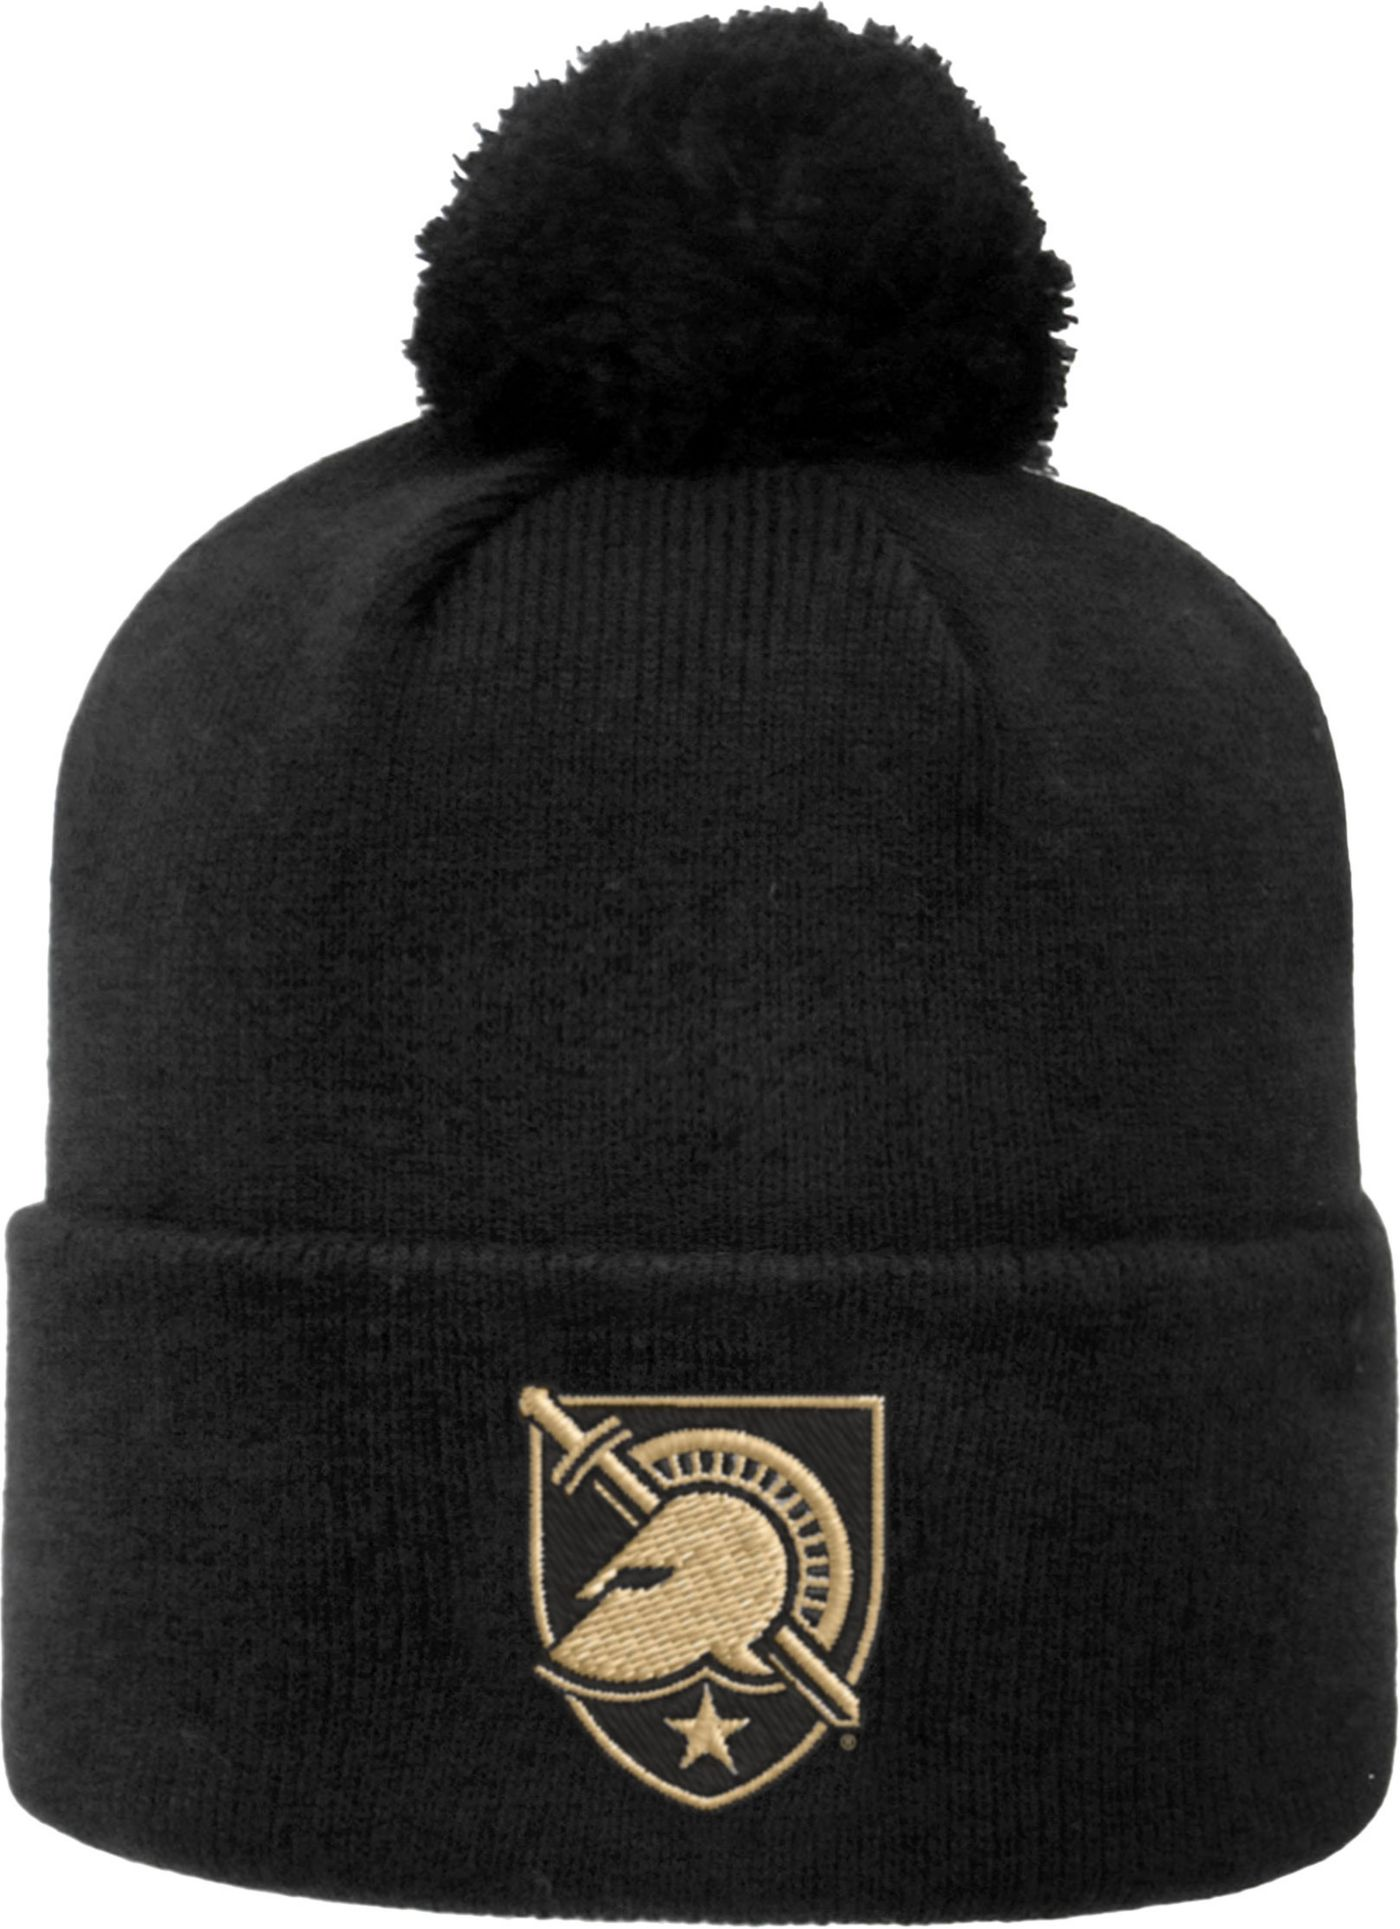 Top of the World Men's Army West Point Black Knights Army Black Pom Knit Beanie